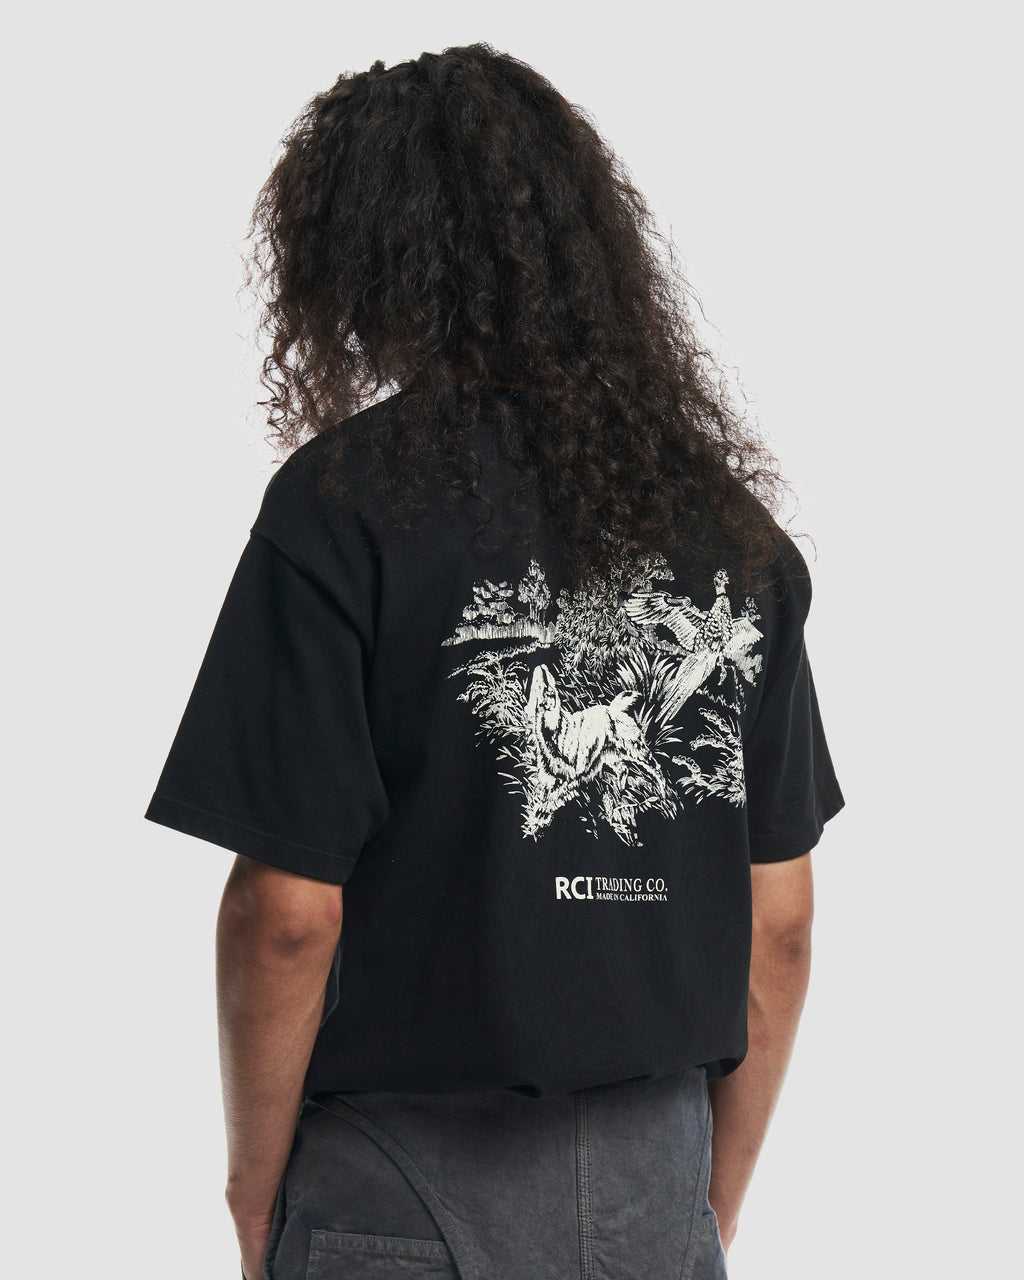 Hunting Division Tee Shirt in Black